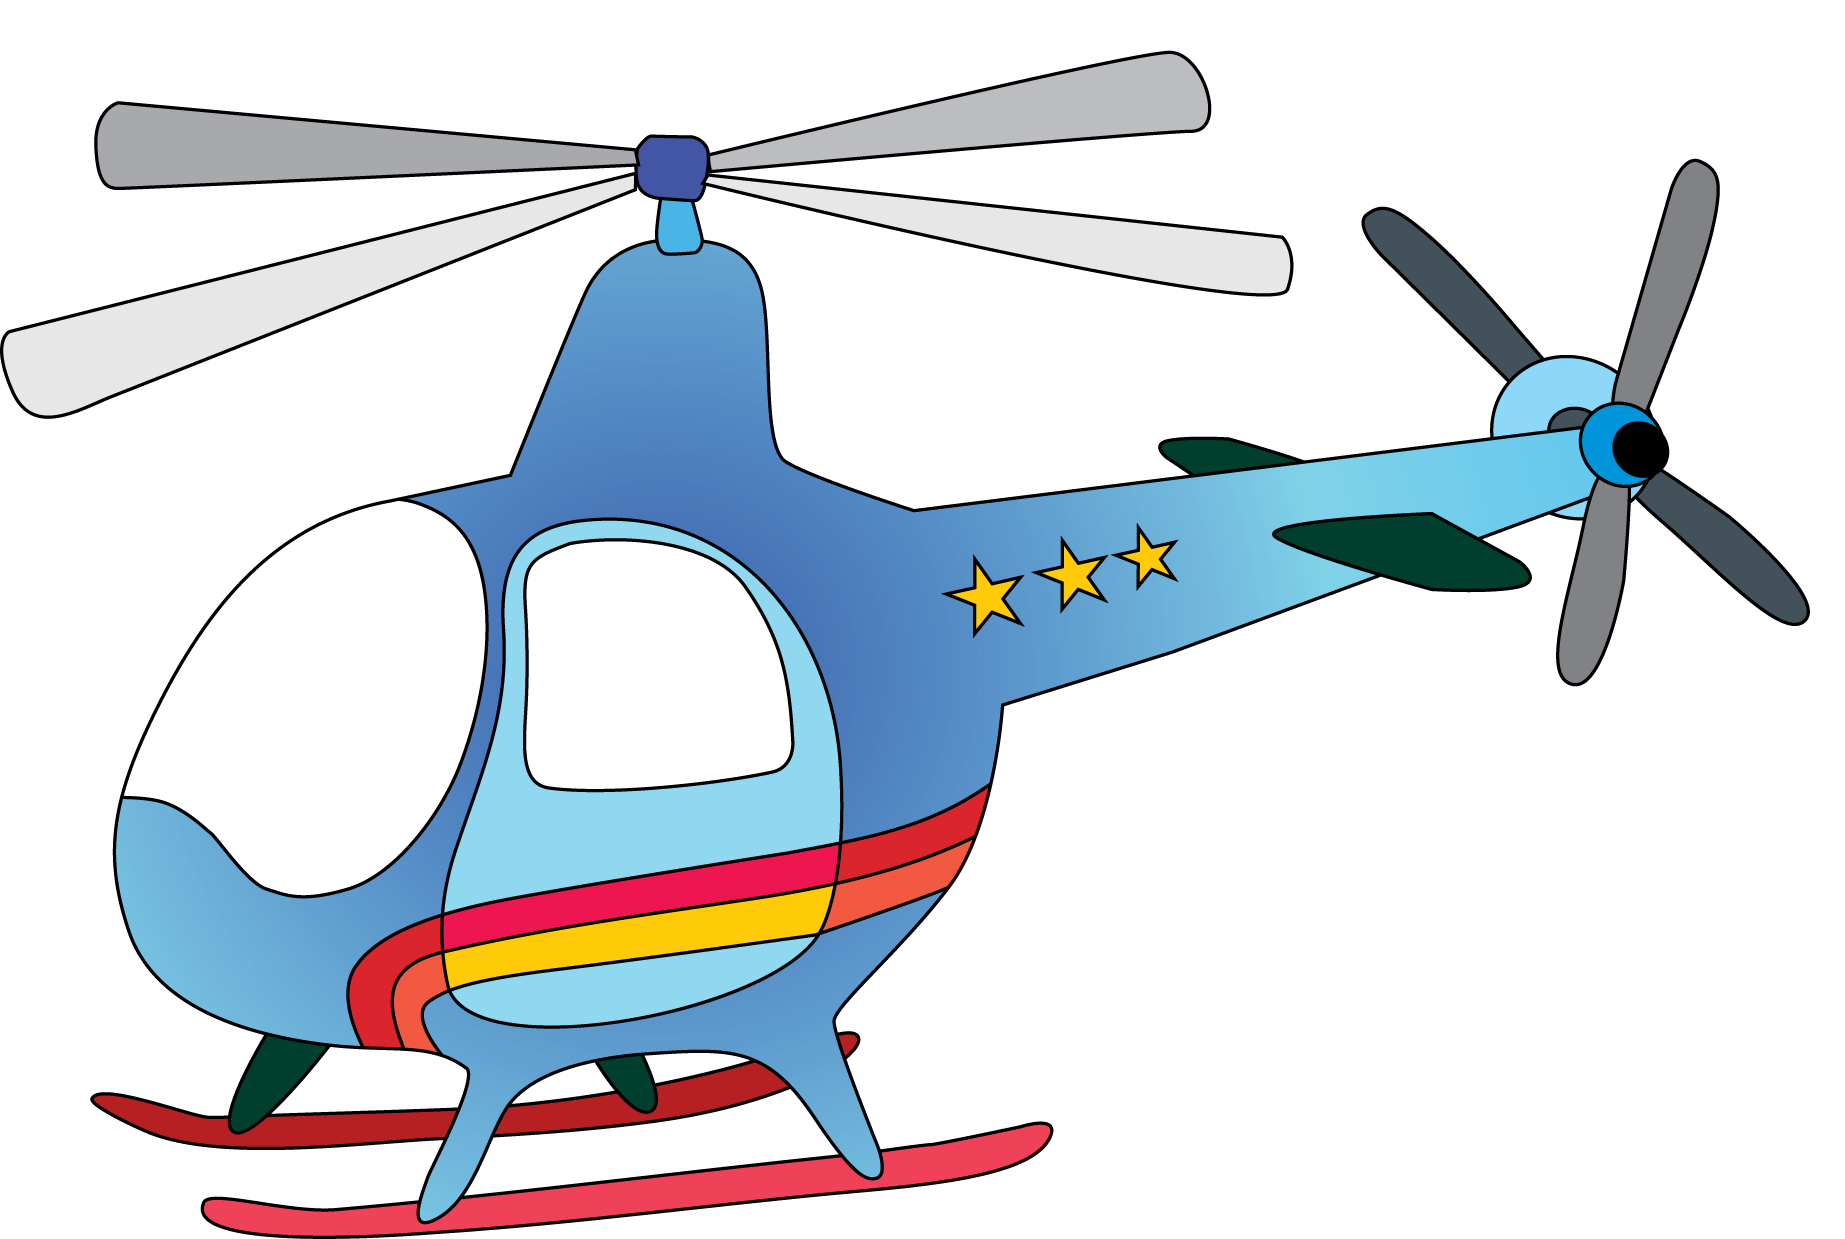 helicopter clipart clipart panda free clipart images rh clipartpanda com helicopter clipart outline helicopter clipart preschool